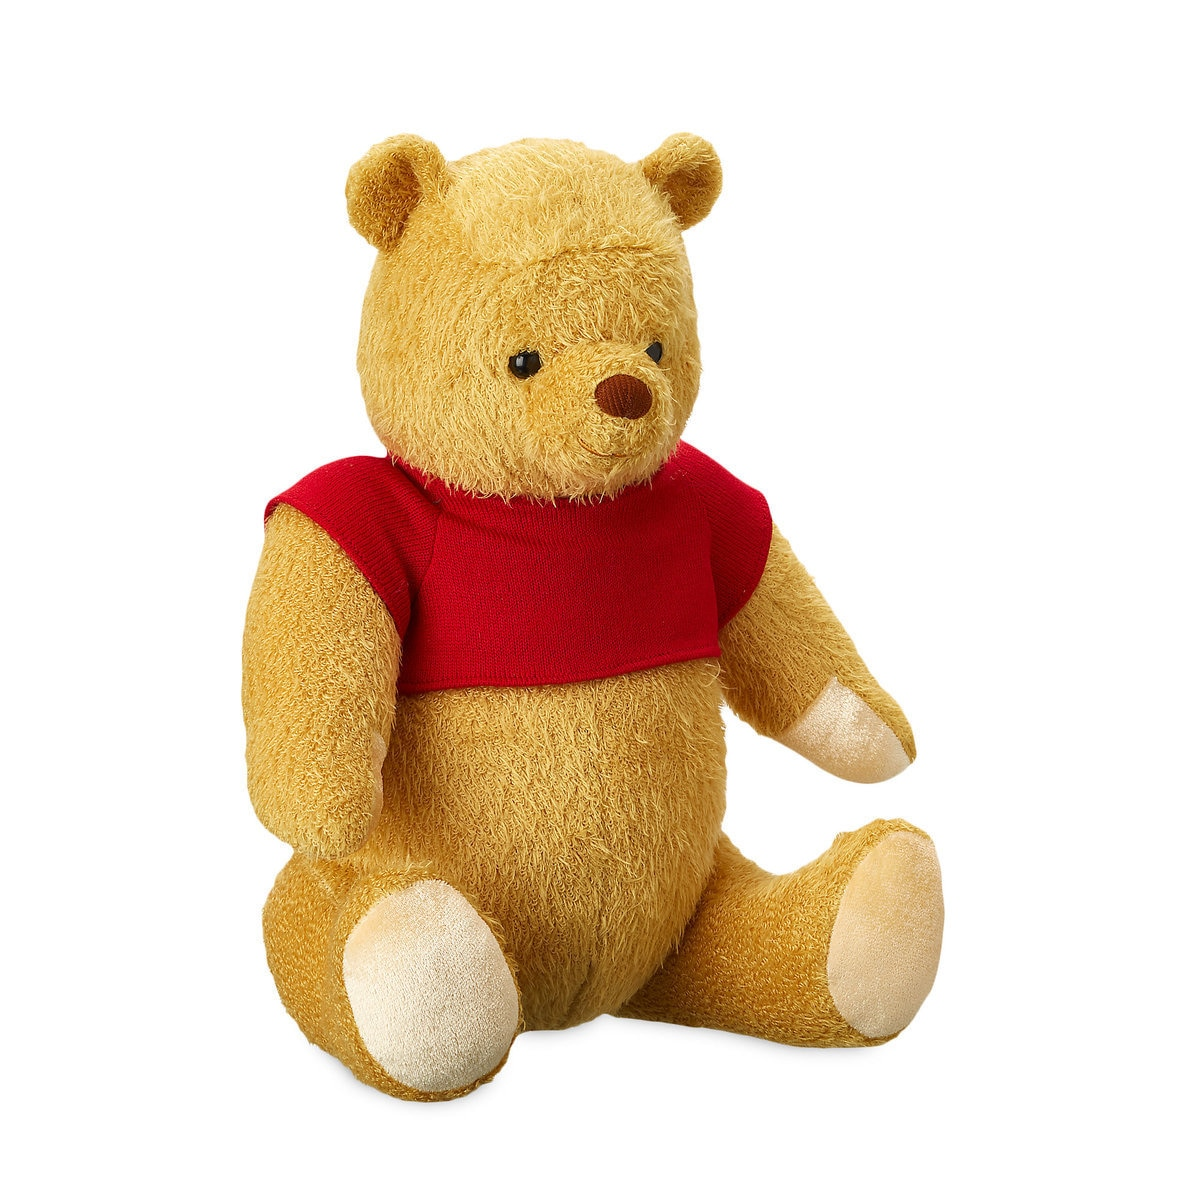 021a0bd8cdf7 Product Image of Winnie the Pooh Plush - Christopher Robin - Medium   1